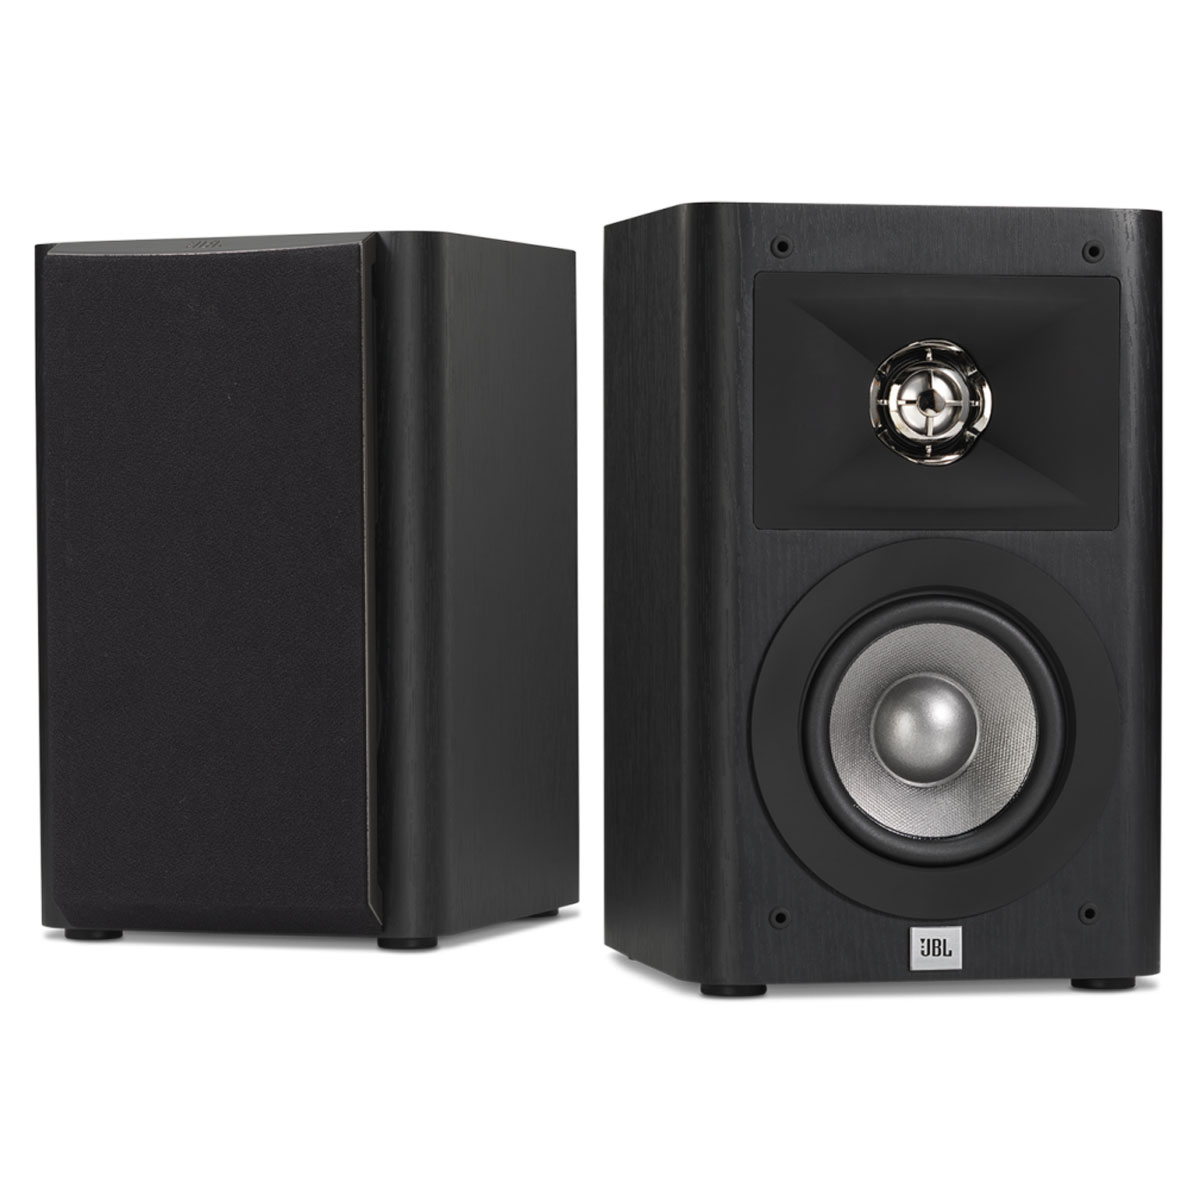 jbl studio 220 noir enceintes hifi jbl sur ldlc. Black Bedroom Furniture Sets. Home Design Ideas